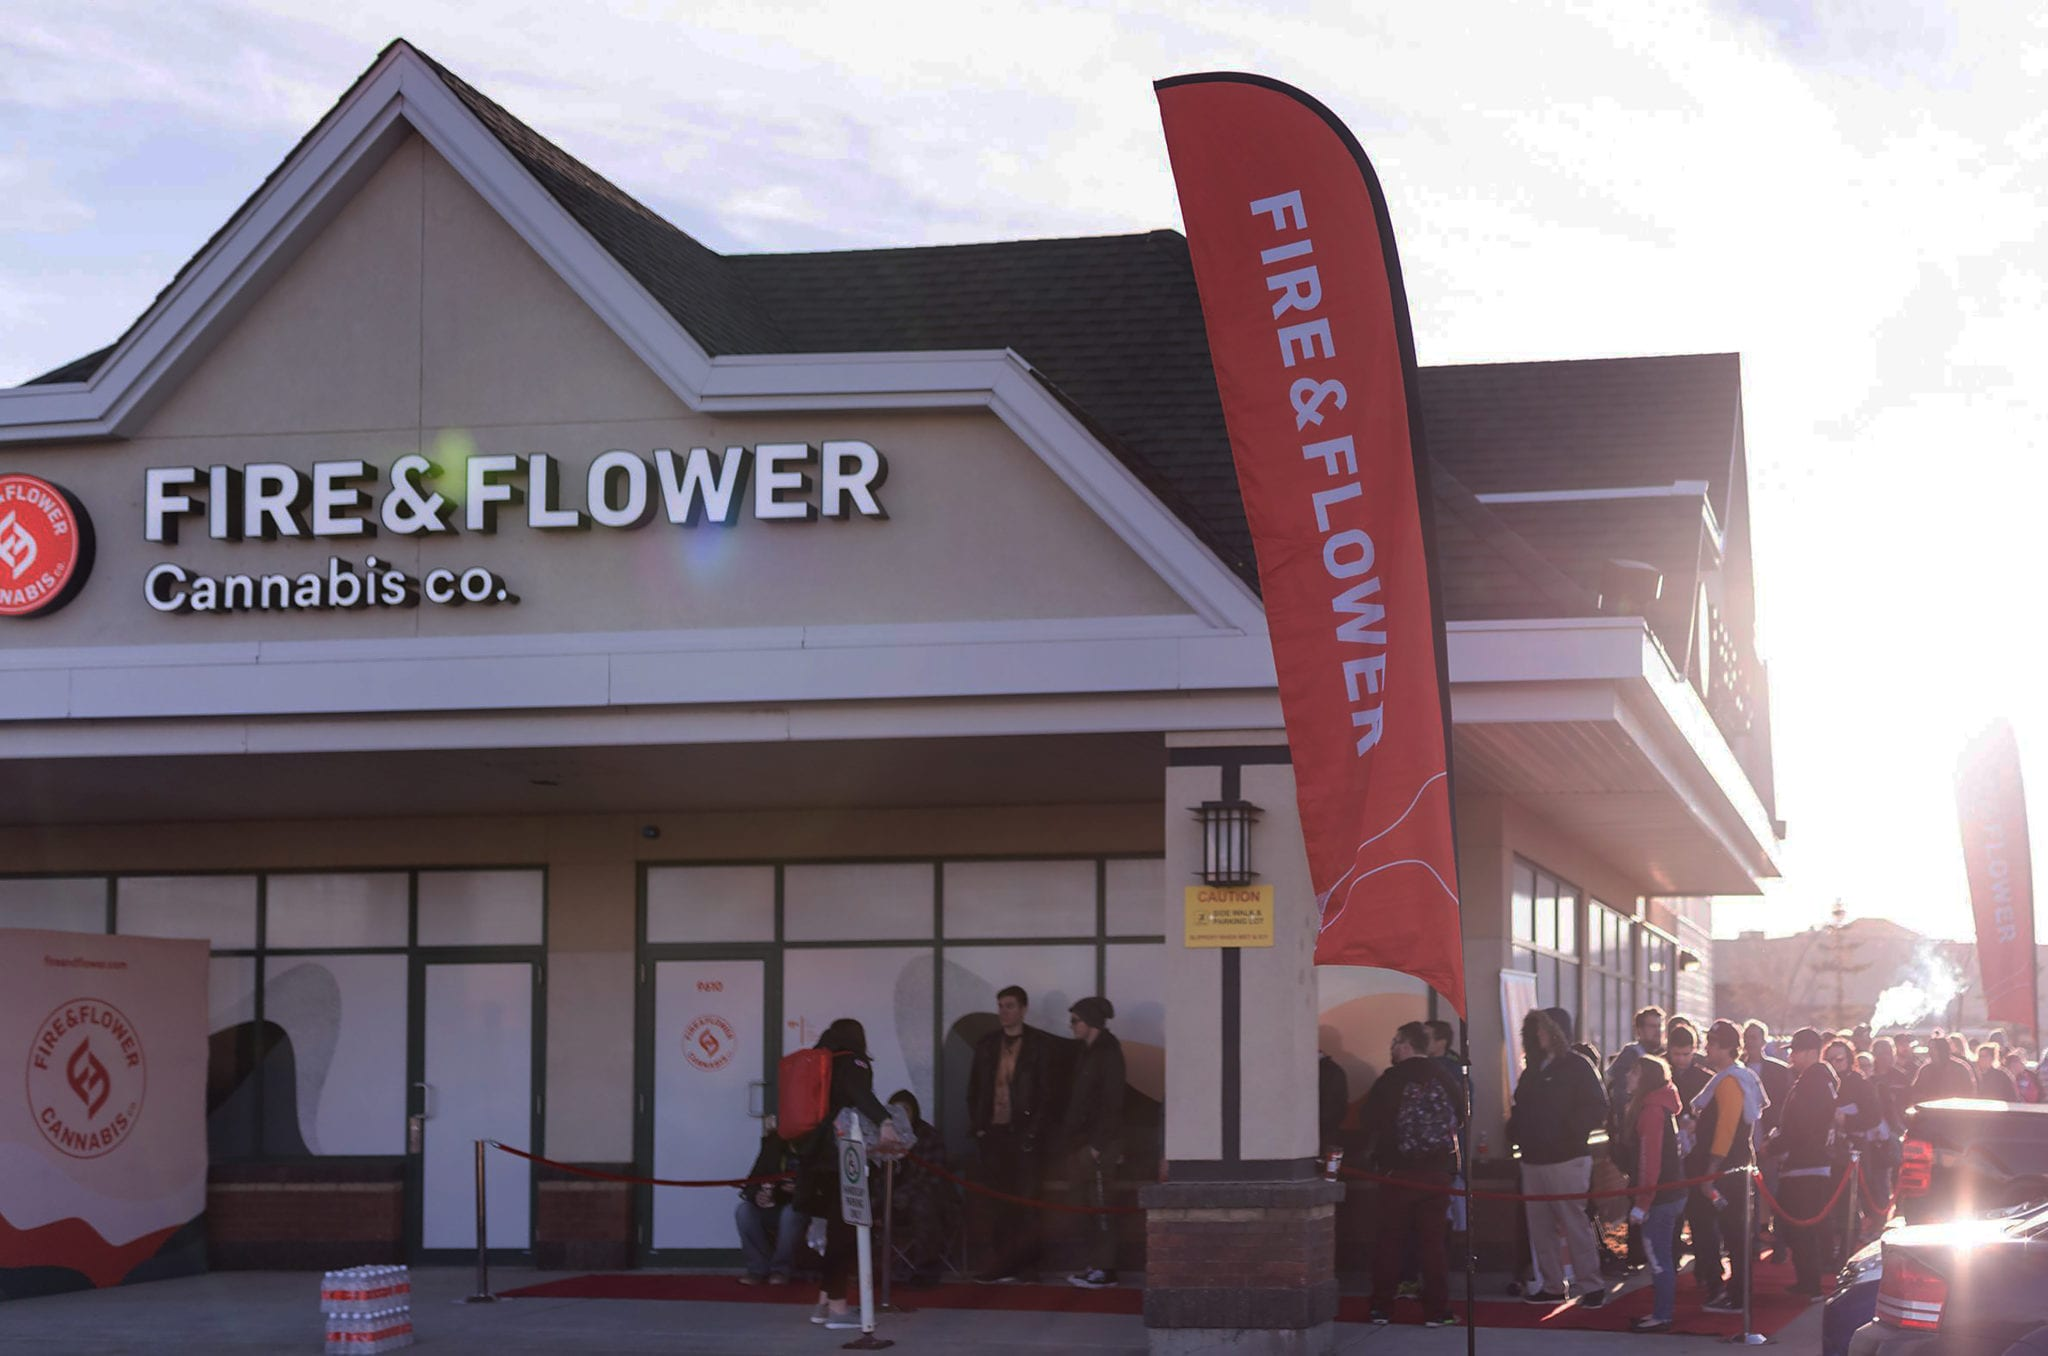 Fire & Flower closes most stores, moves remaining to pickup only